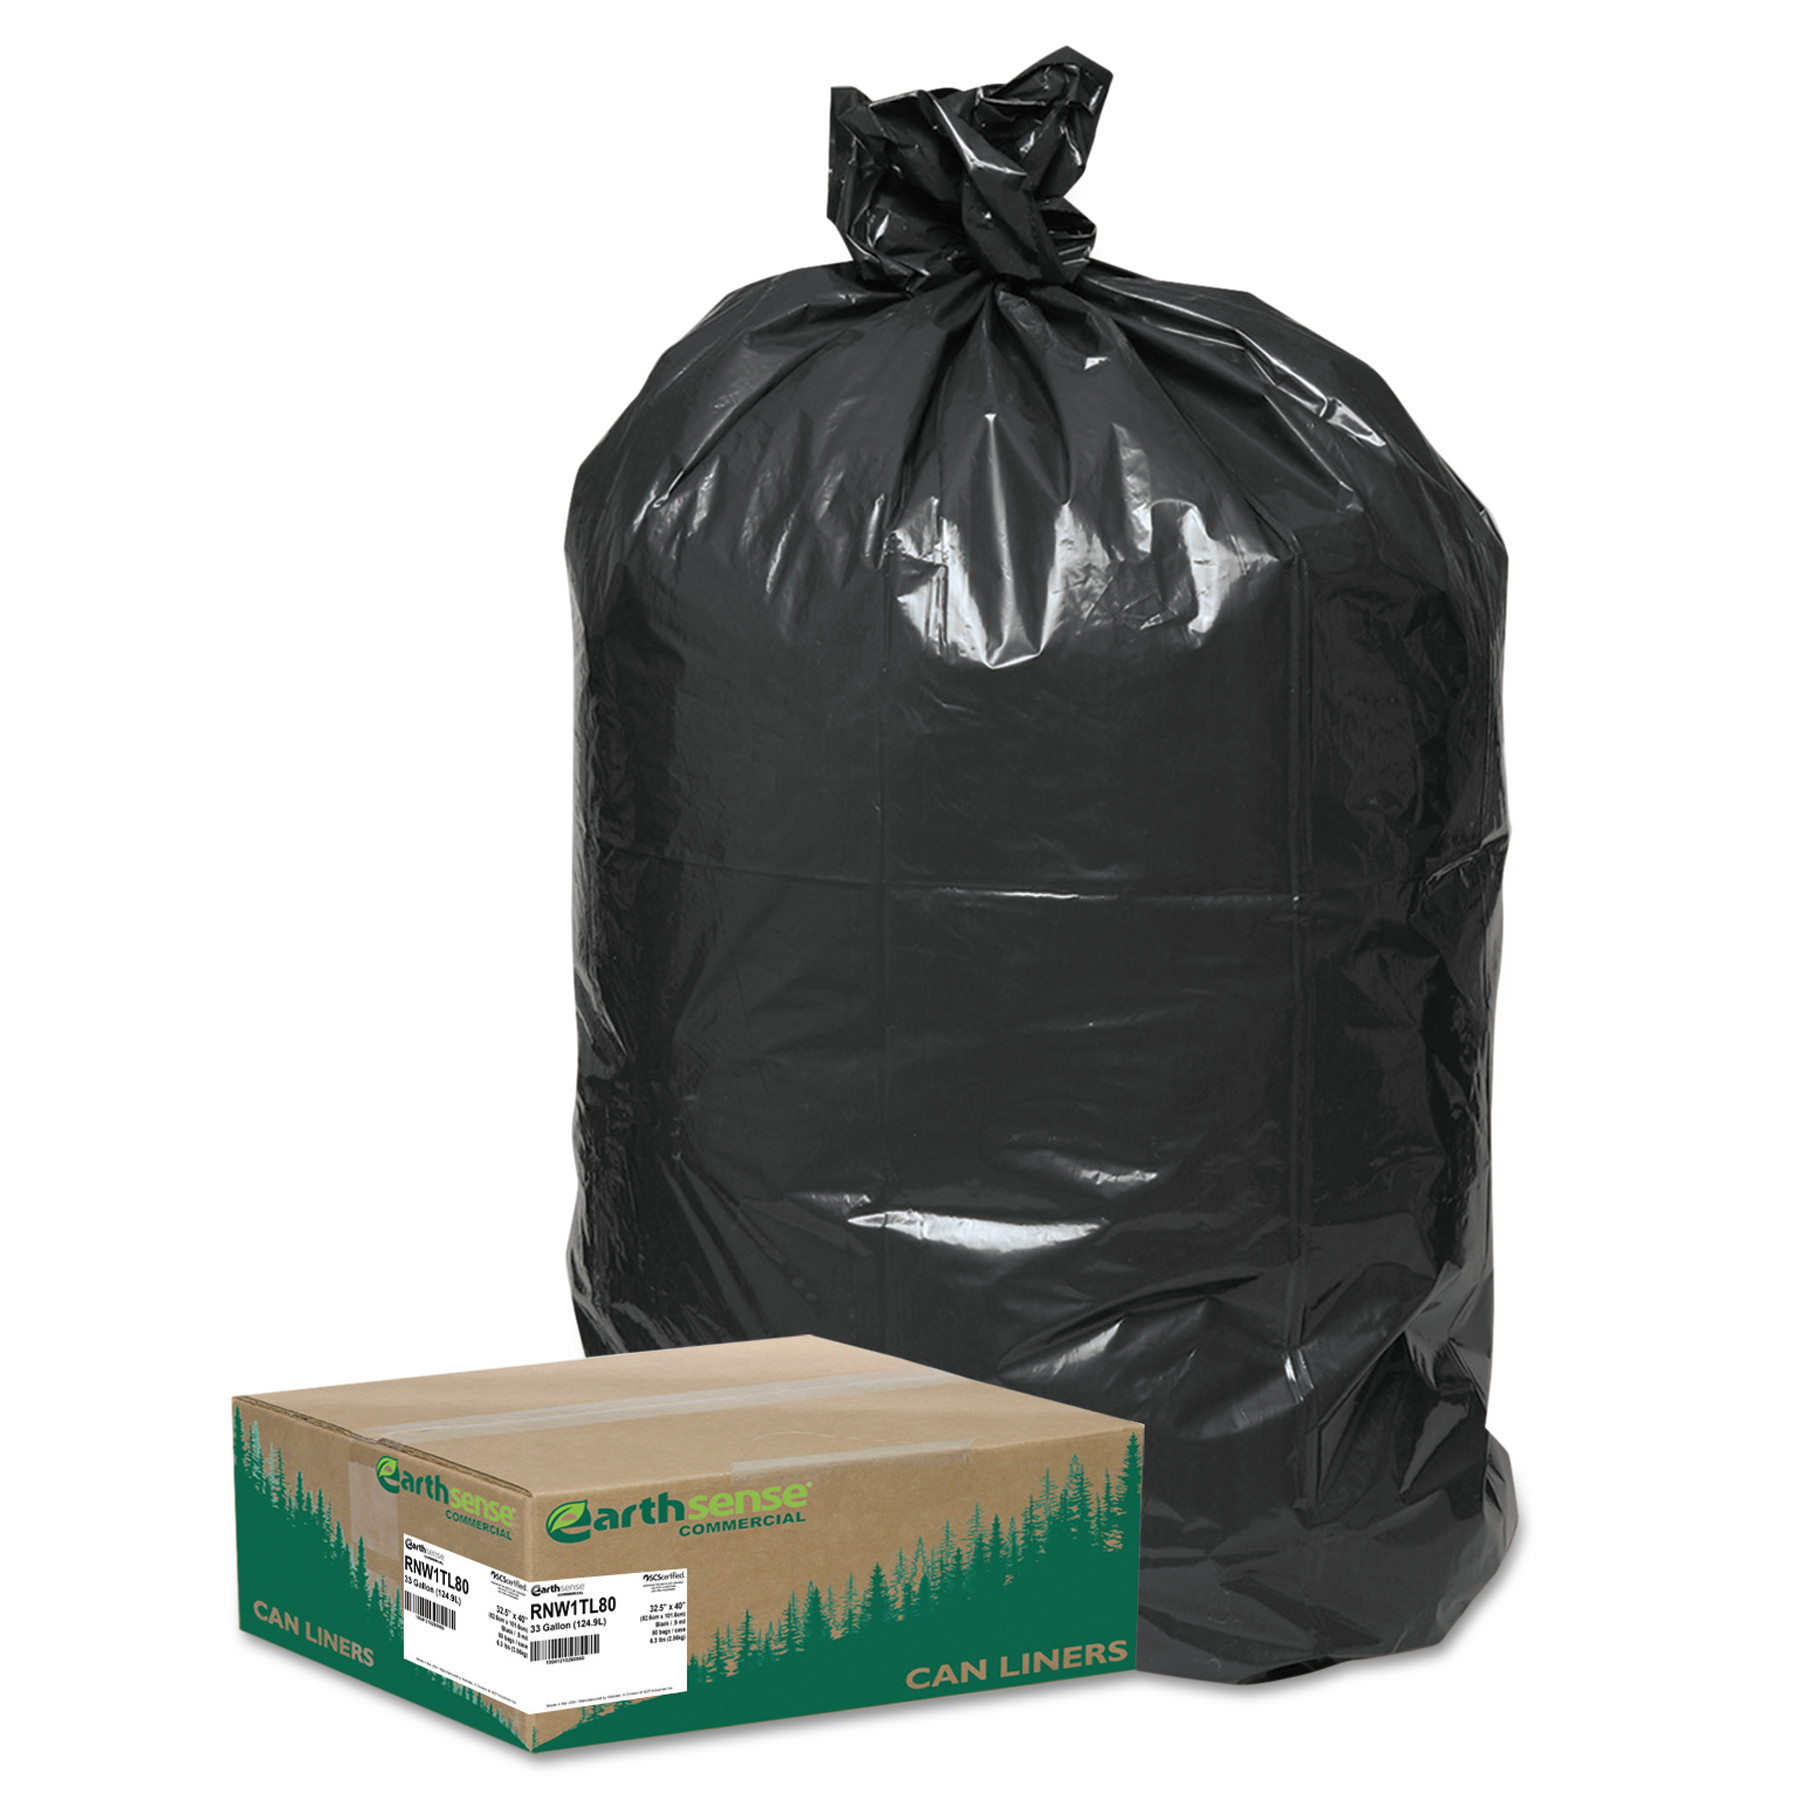 Earthsense Commercial Recycled Large Trash and Yard Bags, 33gal, .9mil, 32.5 x 40, Black, 80/Carton